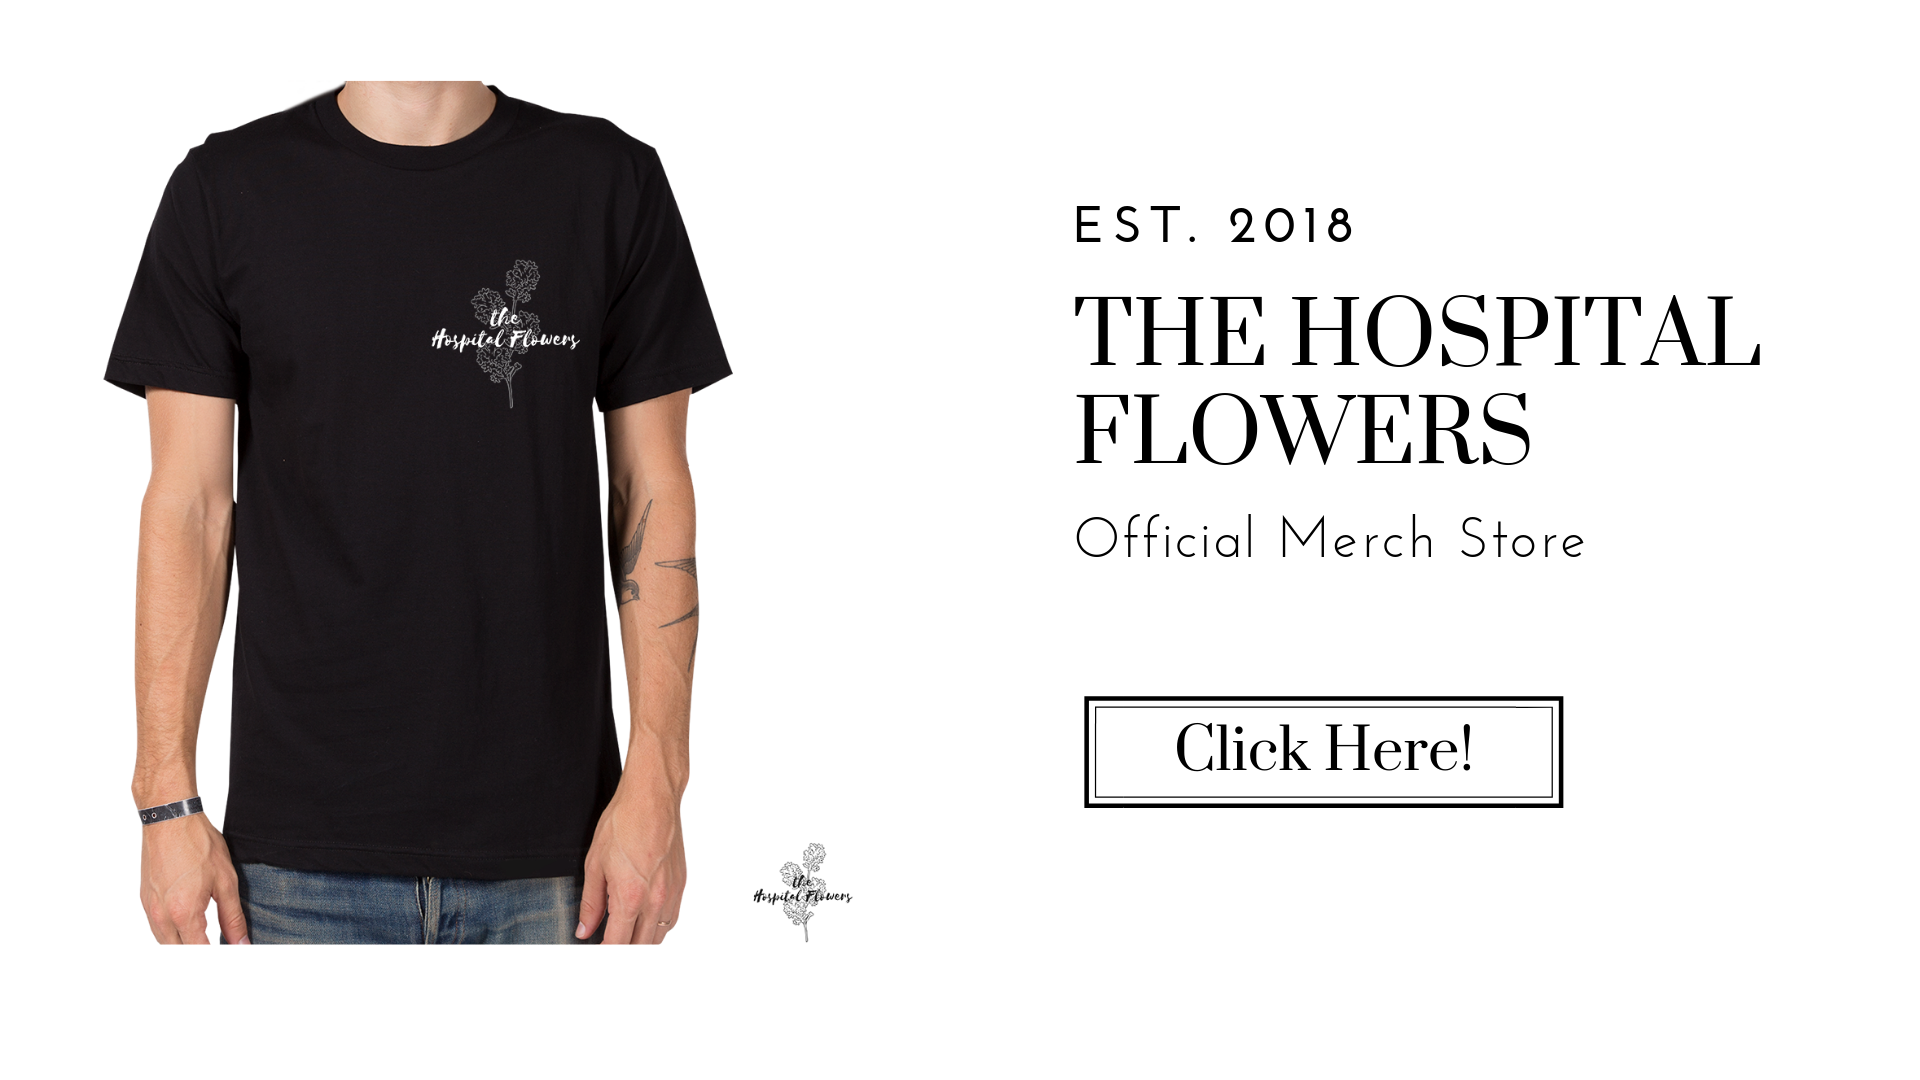 The Hospital Flowers - Merch